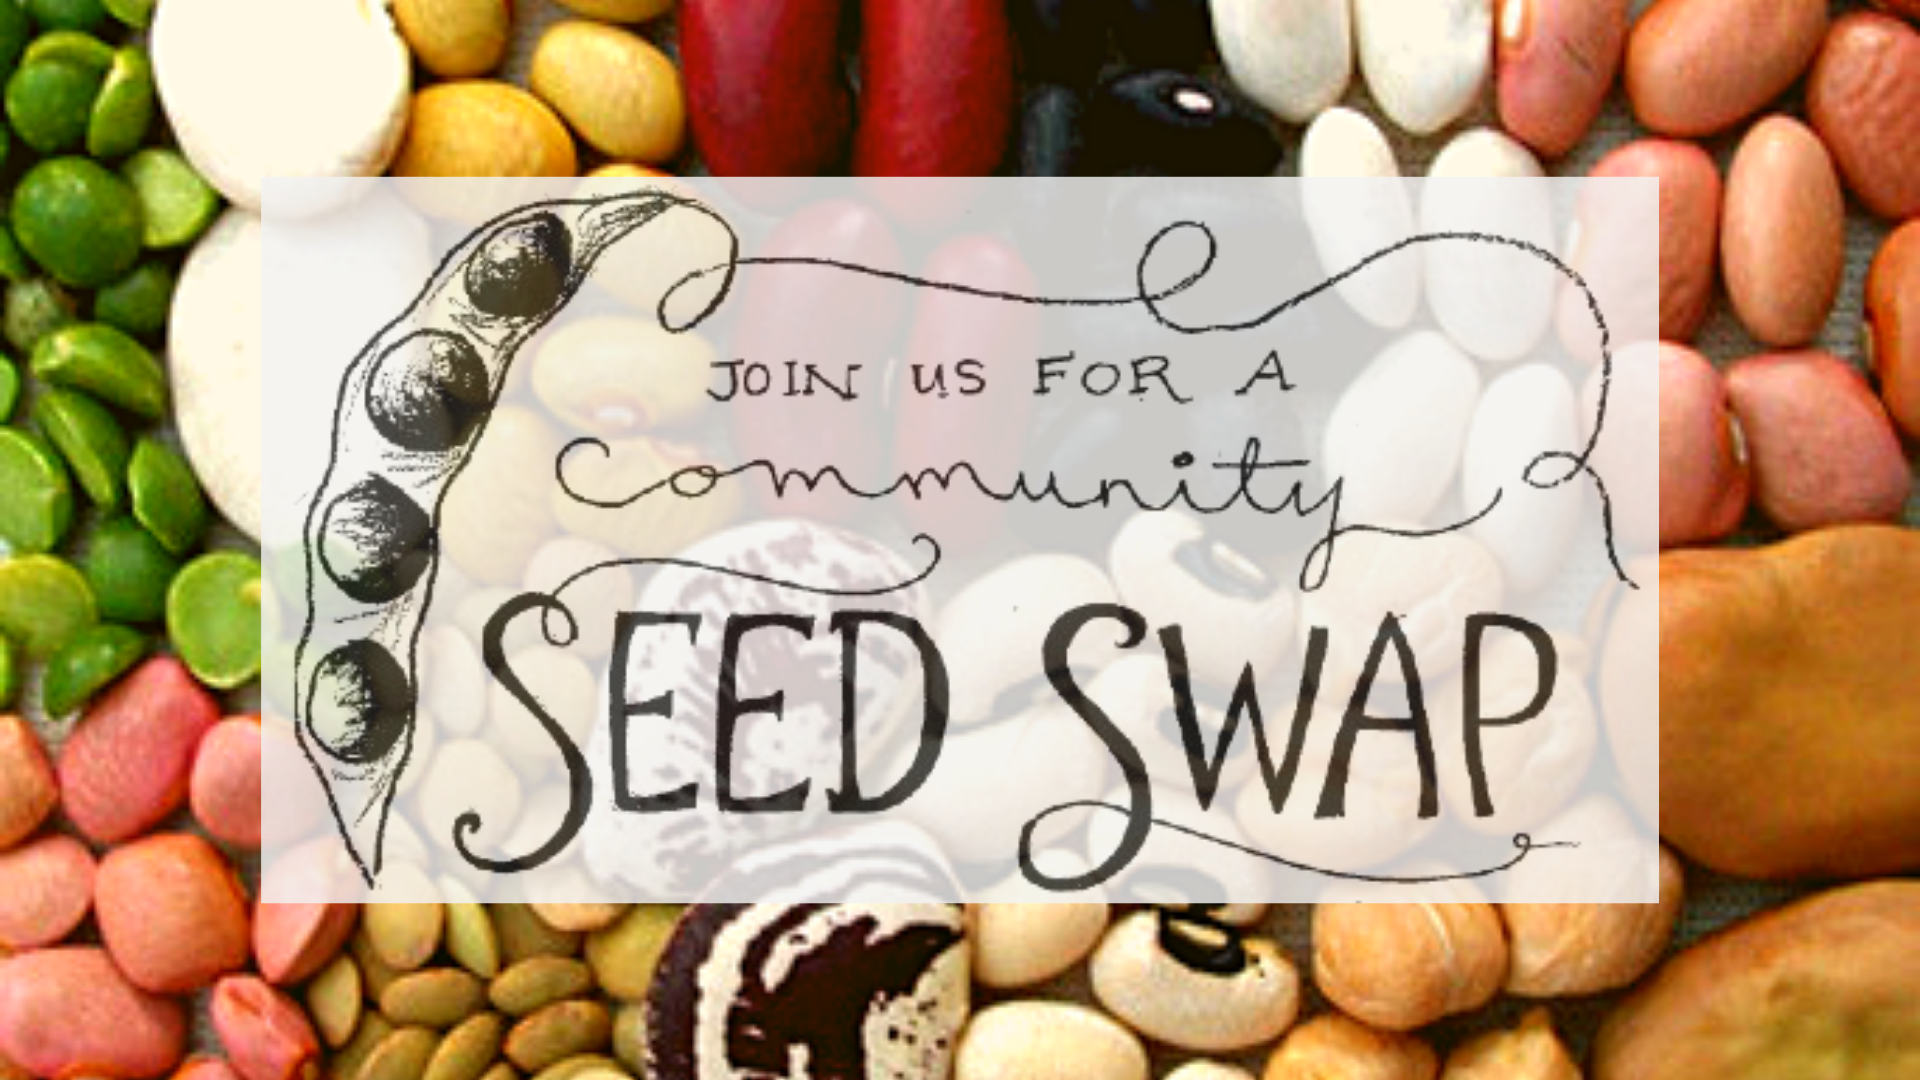 monthly community seed swap